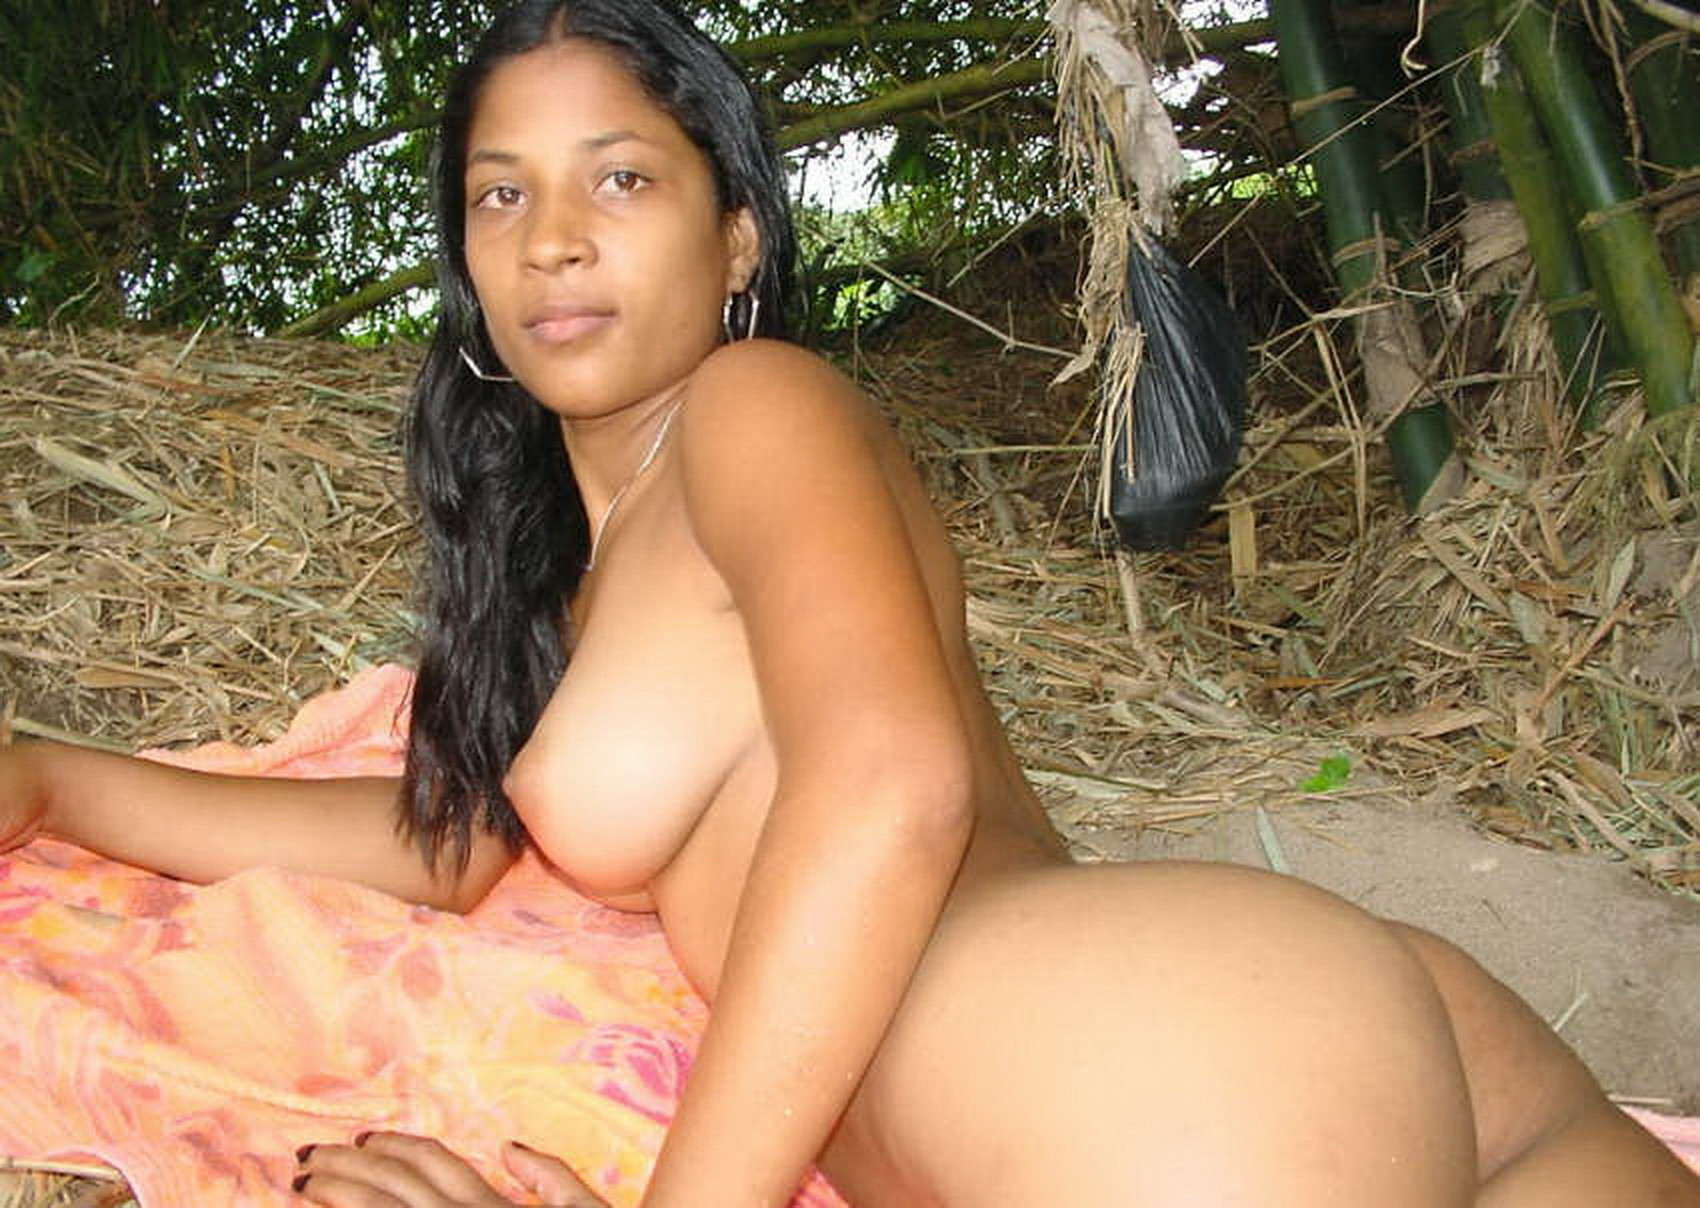 kerala-lady-naked-photo-pictures-and-stories-of-women-fucking-and-sucking